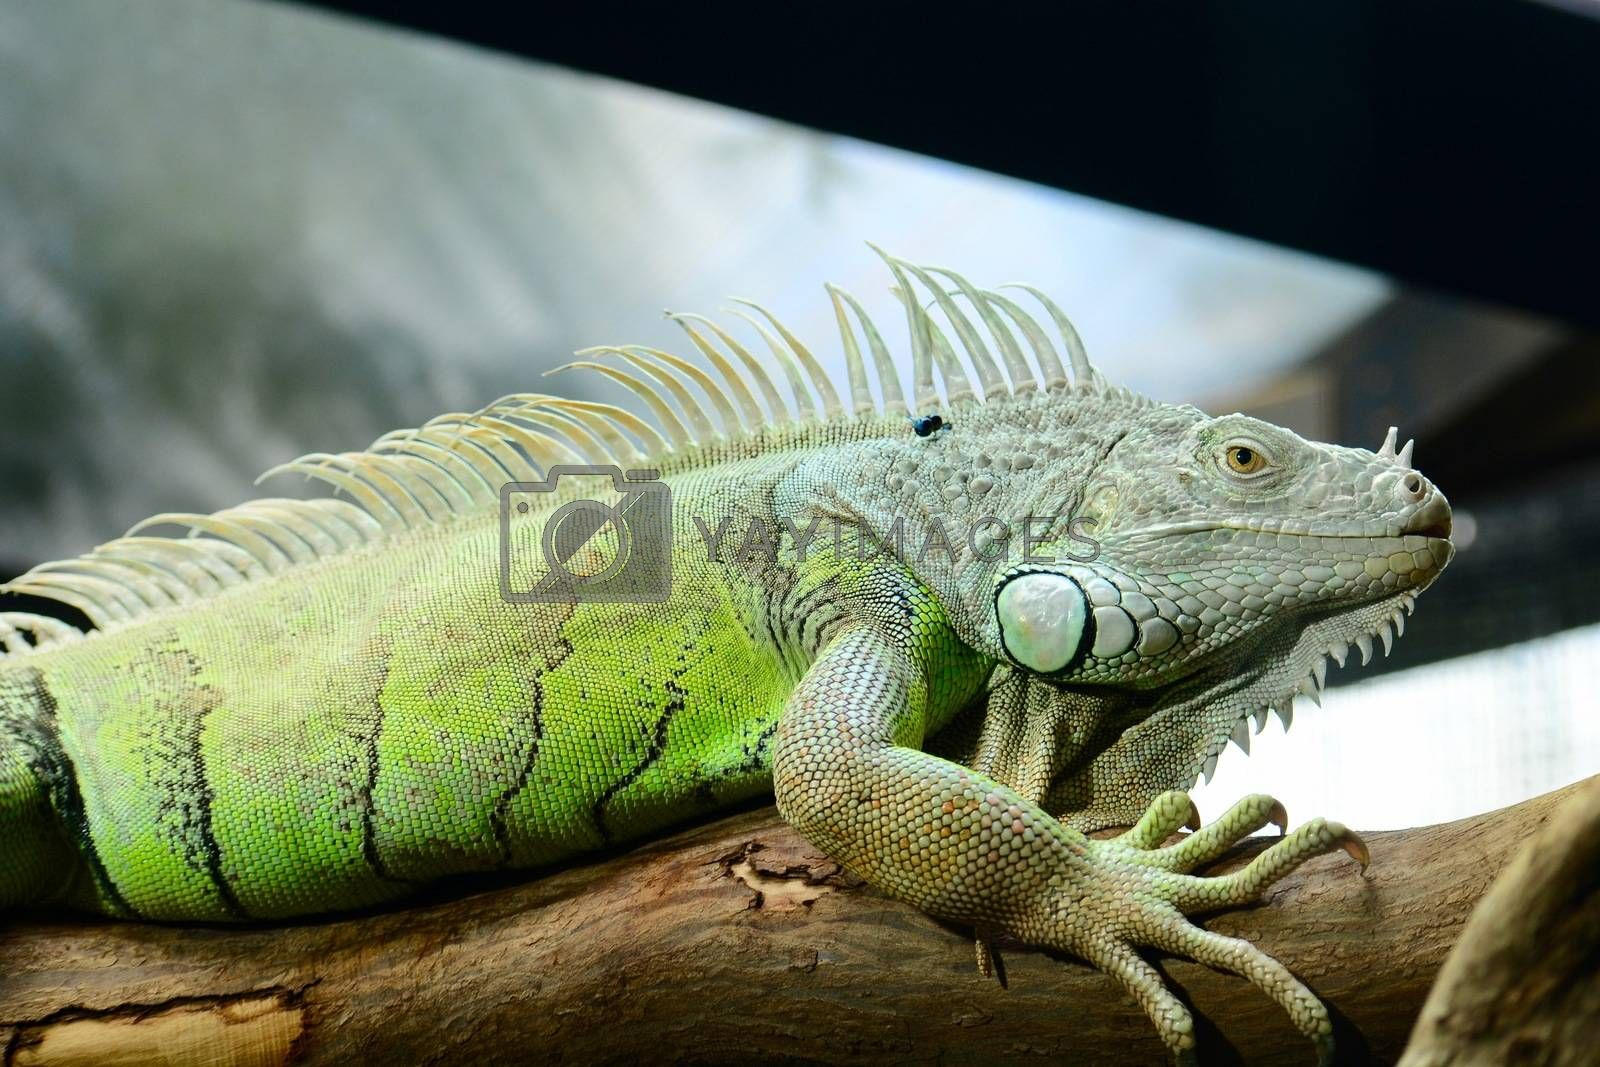 The green iguana ranges over a large geographic area in South America. Commonly found in captivity as a pet due to its calm disposition and bright colors